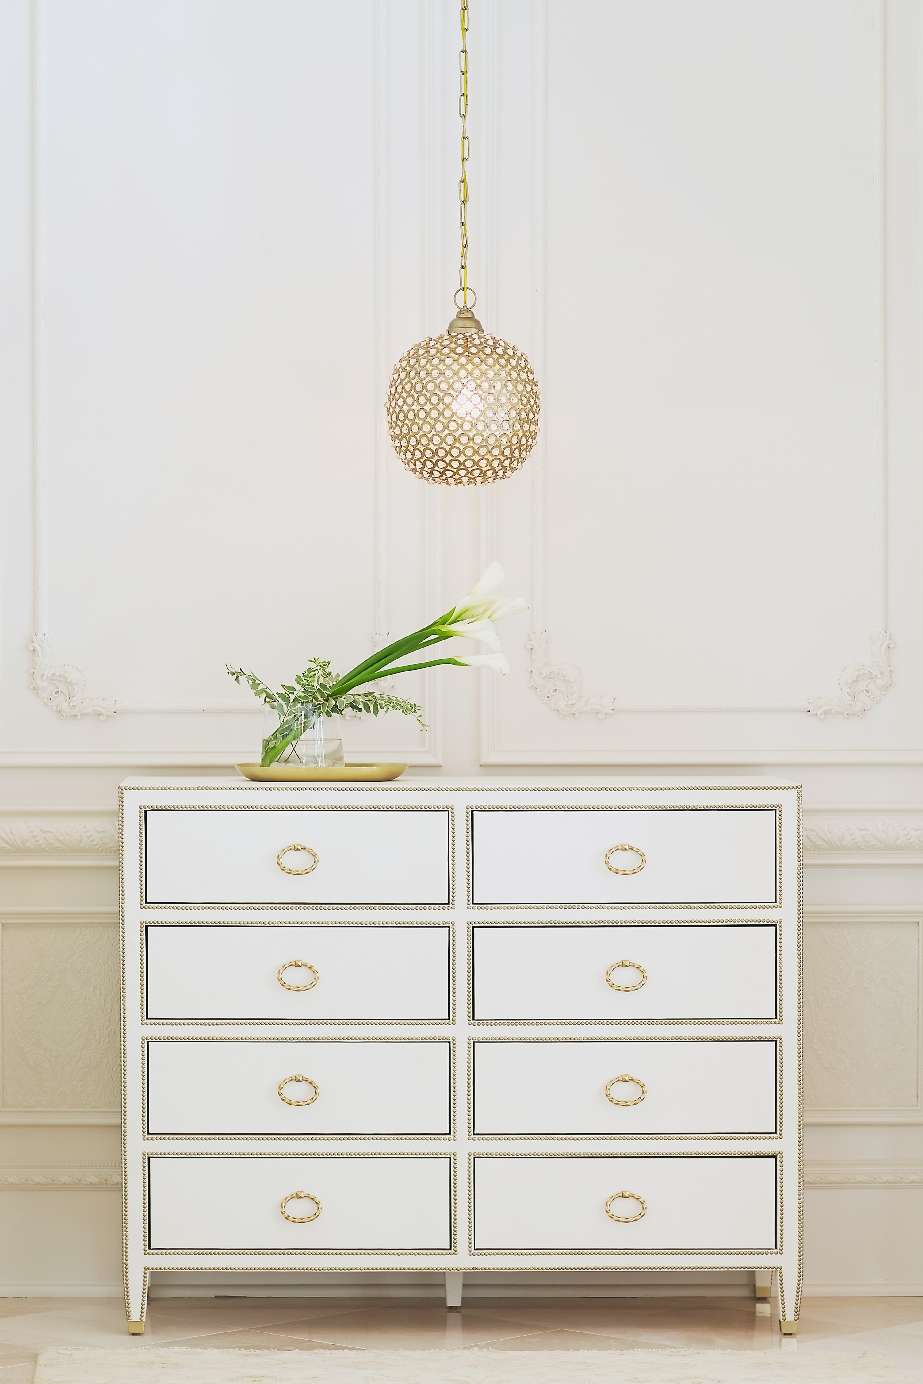 Stacey Van Berkel Photography I Elegant dresser with pendant light I White on white I Parisian Apartment I Bernhardt Furniture